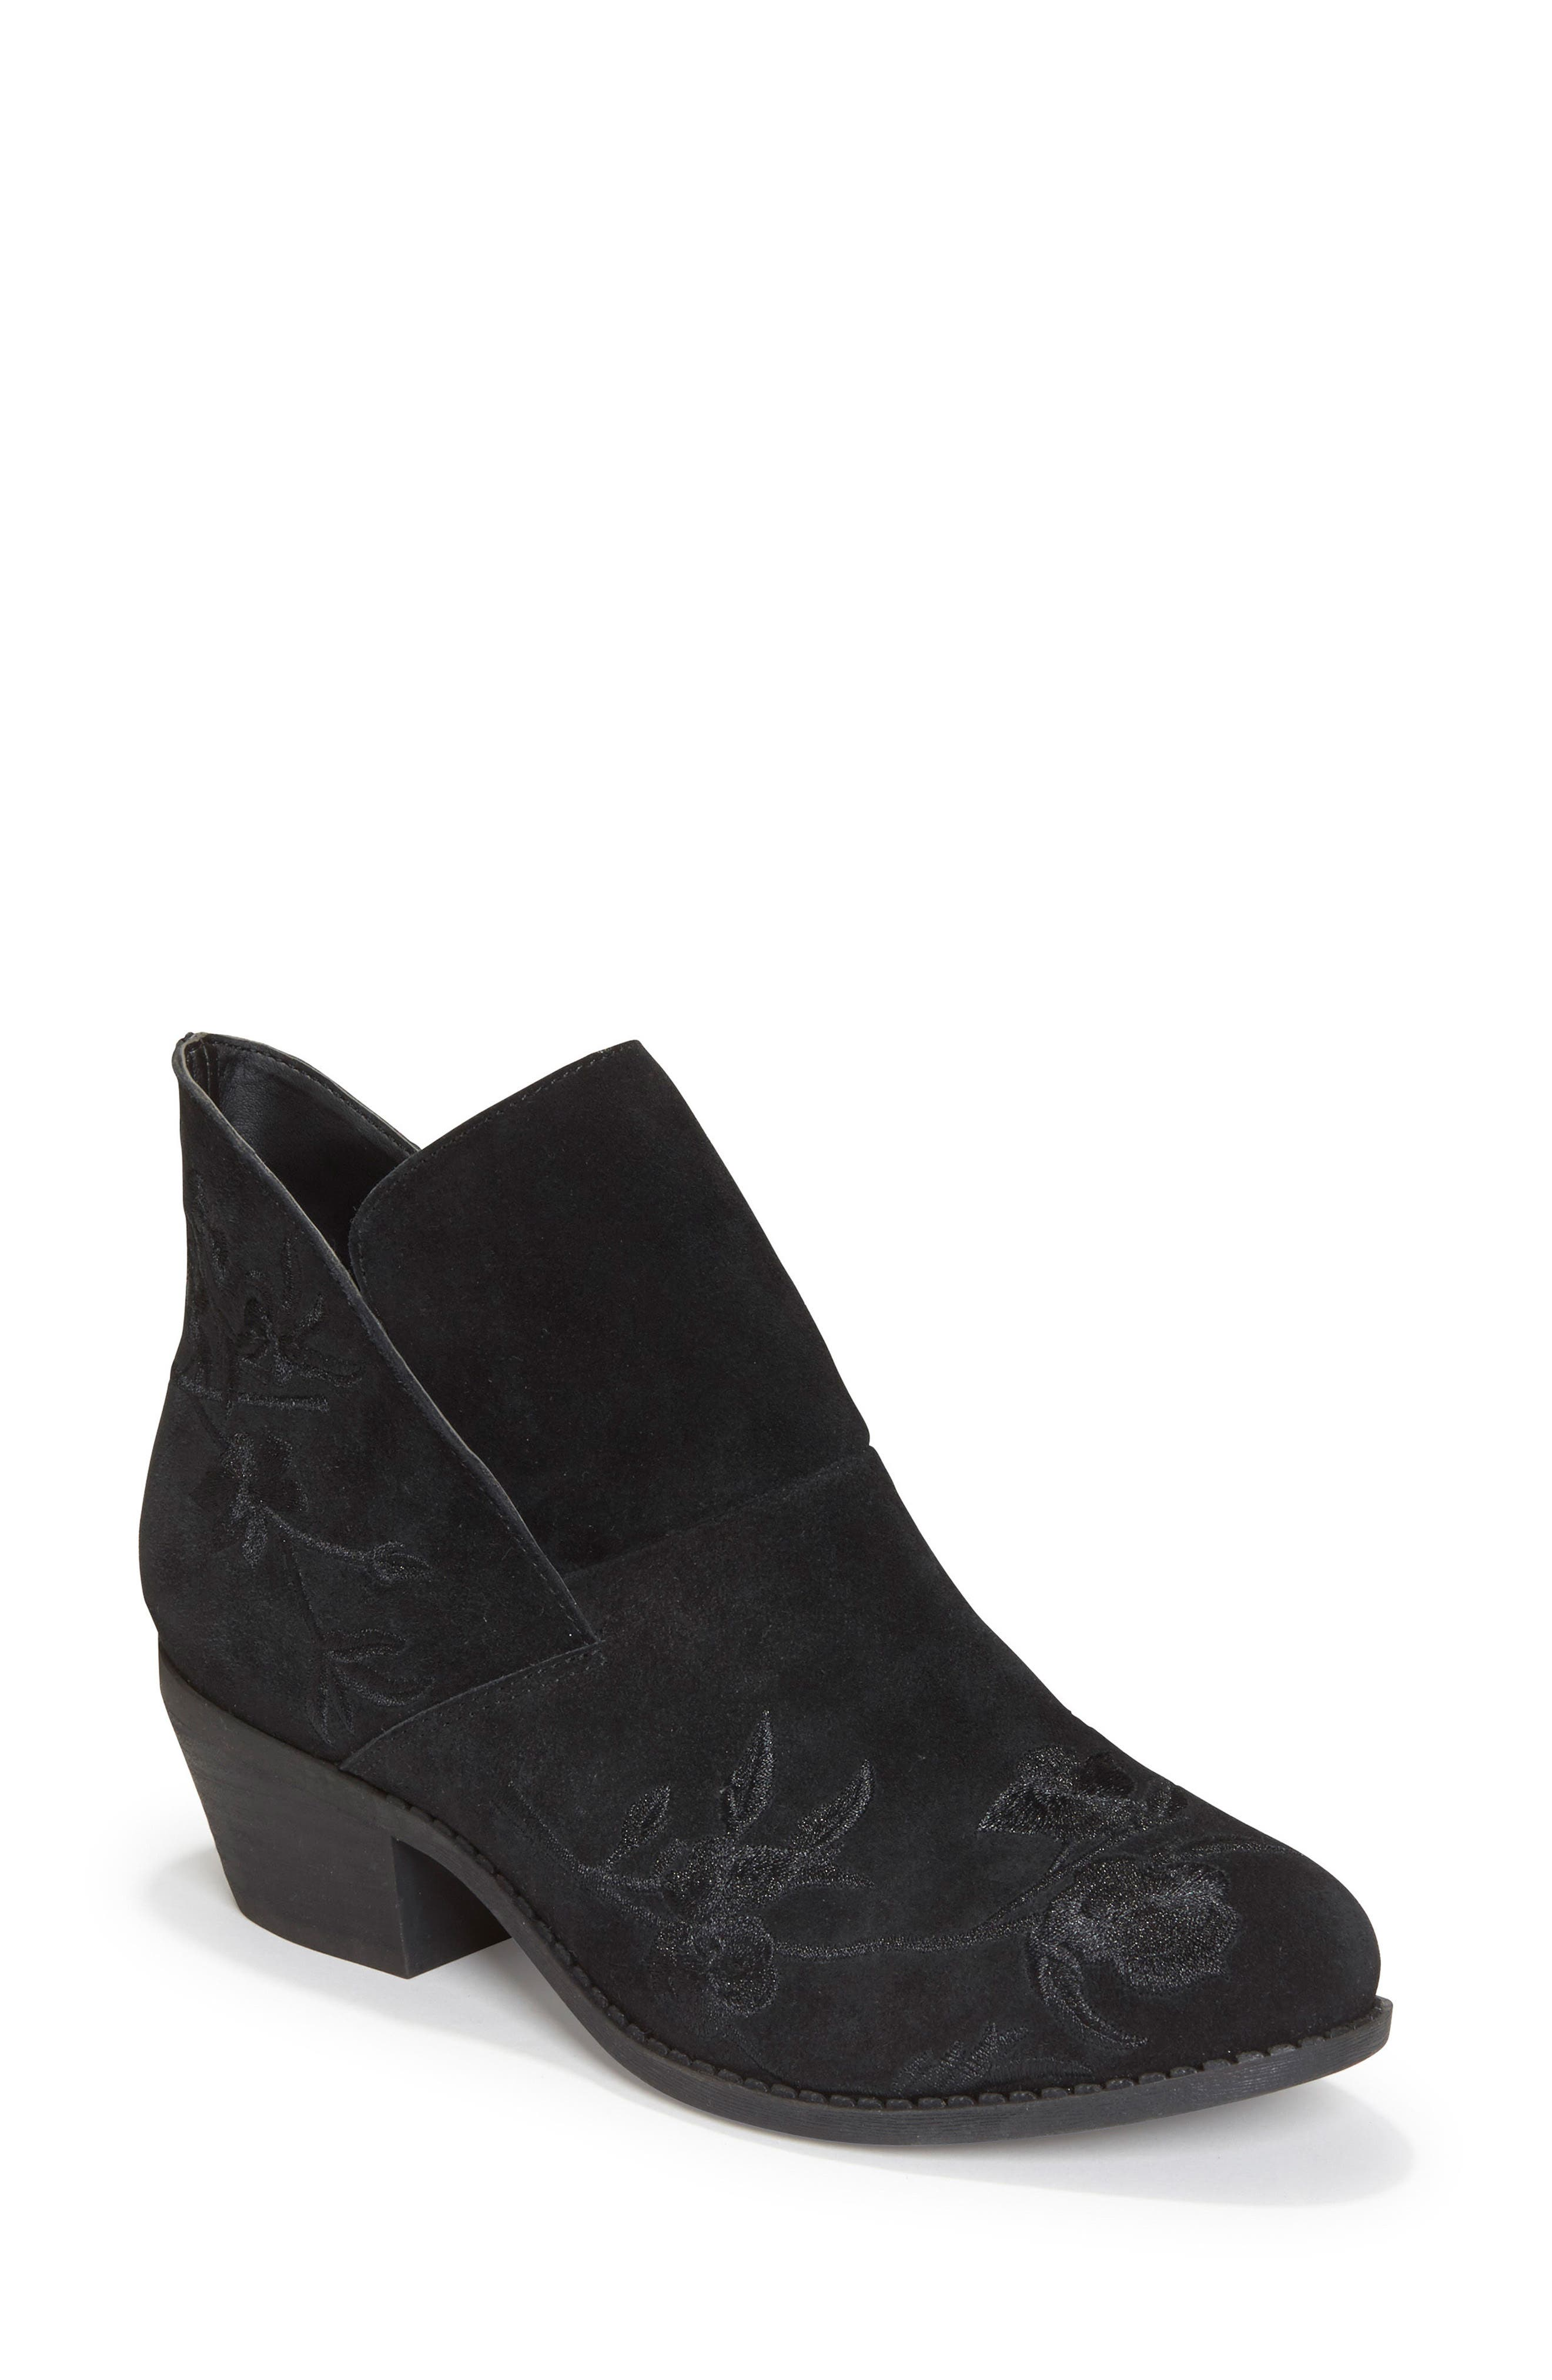 Me Too Zena Ankle Boot,                             Main thumbnail 1, color,                             Black Floral Suede